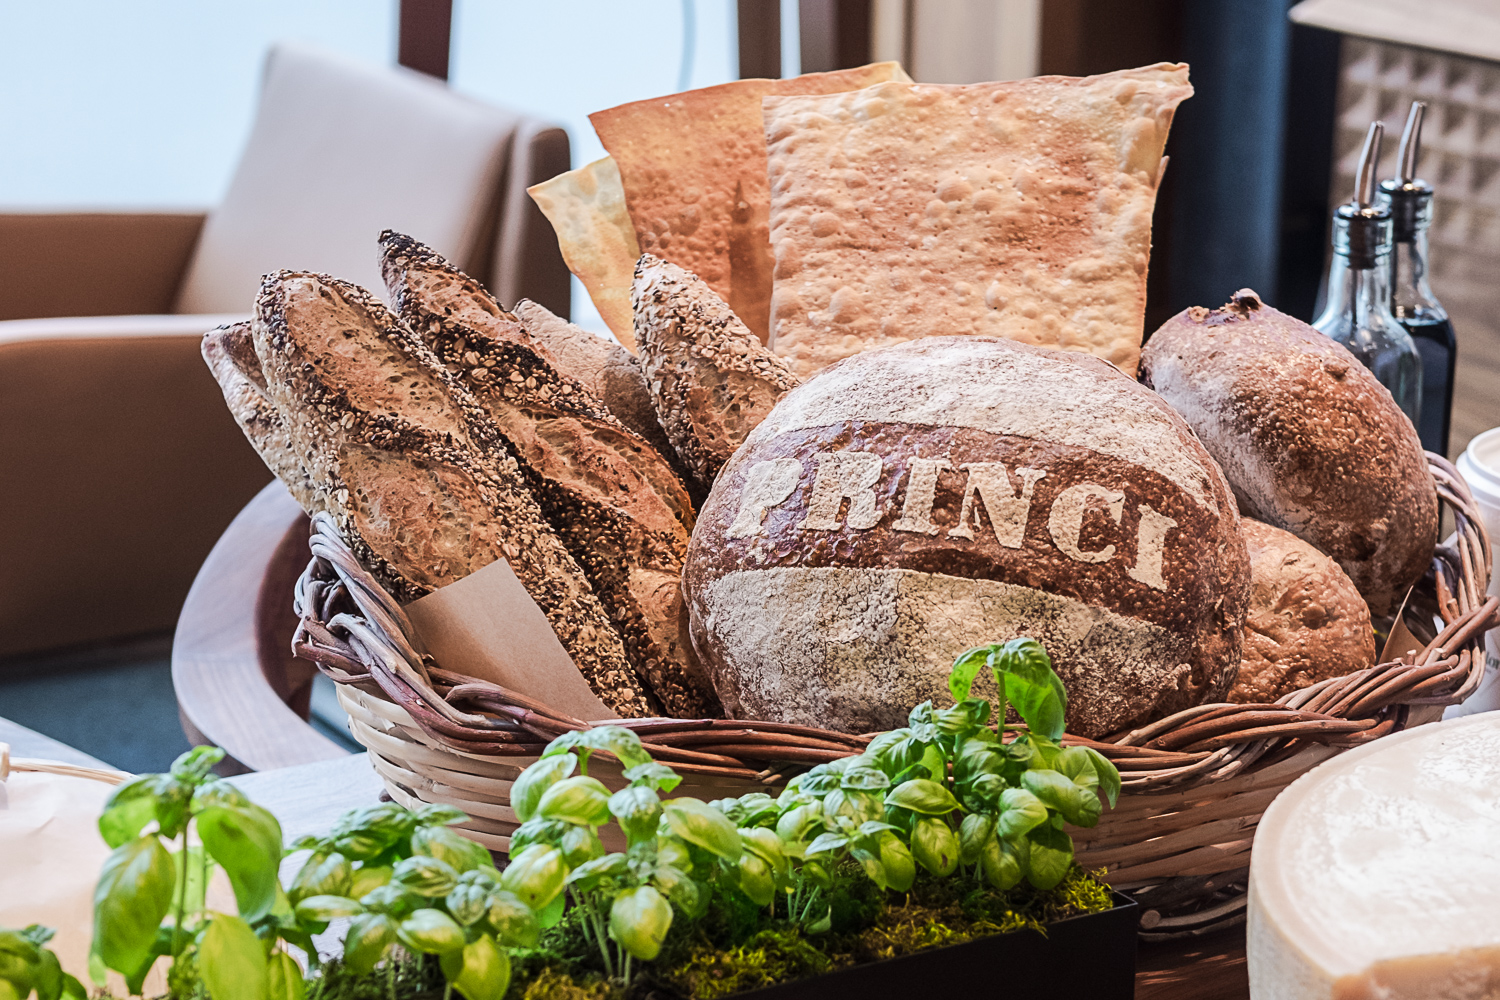 <p>{&amp;nbsp;}Fresh, earthy, aromatic, artisanal breads are the heart and soul of Princi and will be served all day and available for purchase. These include naturally leavened loaves, ciabatta and sfilatini crafted from premium Italian-milled flour.(Image: Paola Thomas / Seattle Refined){&amp;nbsp;}</p><p></p>